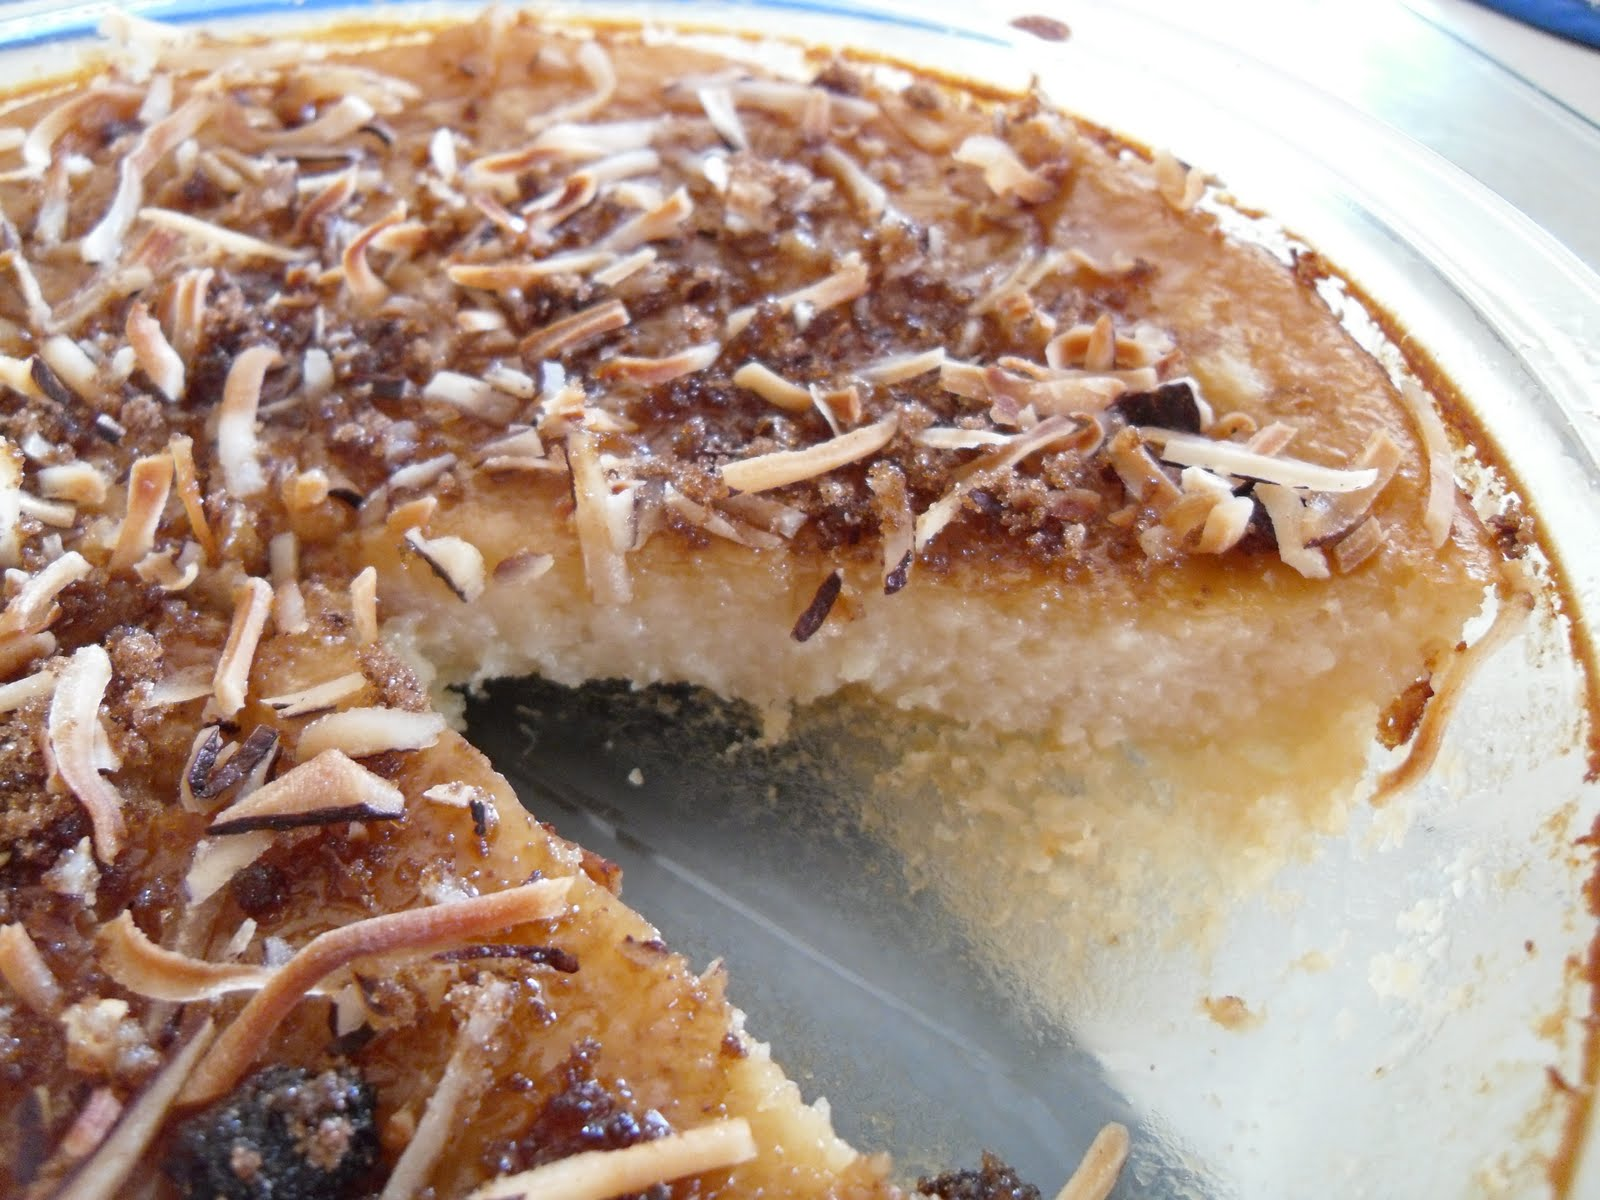 cassava cake bibingka yields 1 cake 8 10 servings ingredients